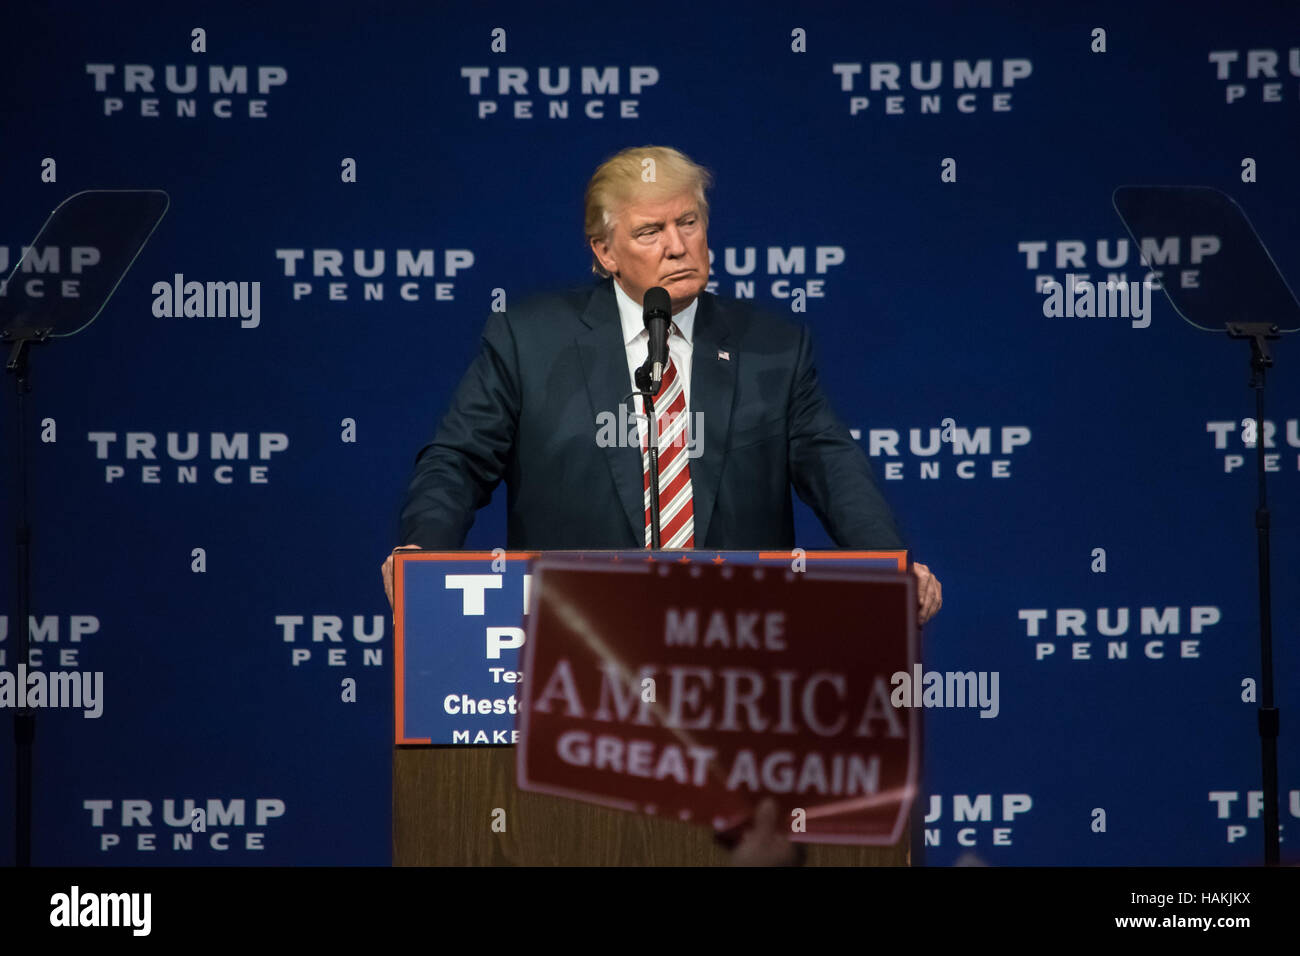 Republican Presidential Nominee Donald Trump pausing on stage during his campaign speech. - Stock Image